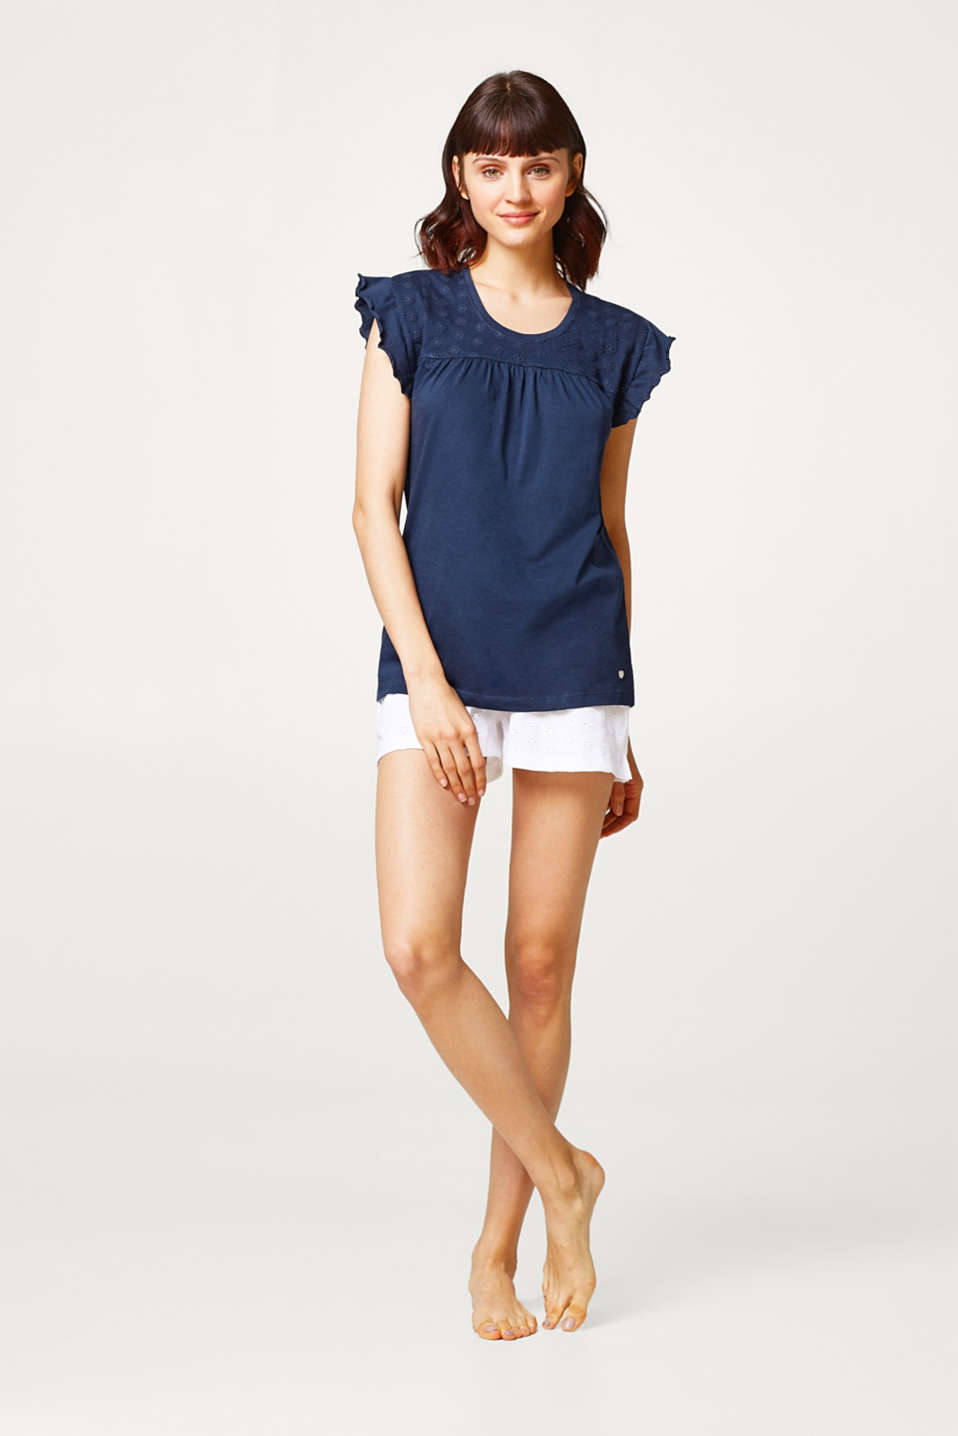 Esprit - Top with embroidery and frills, 100% cotton